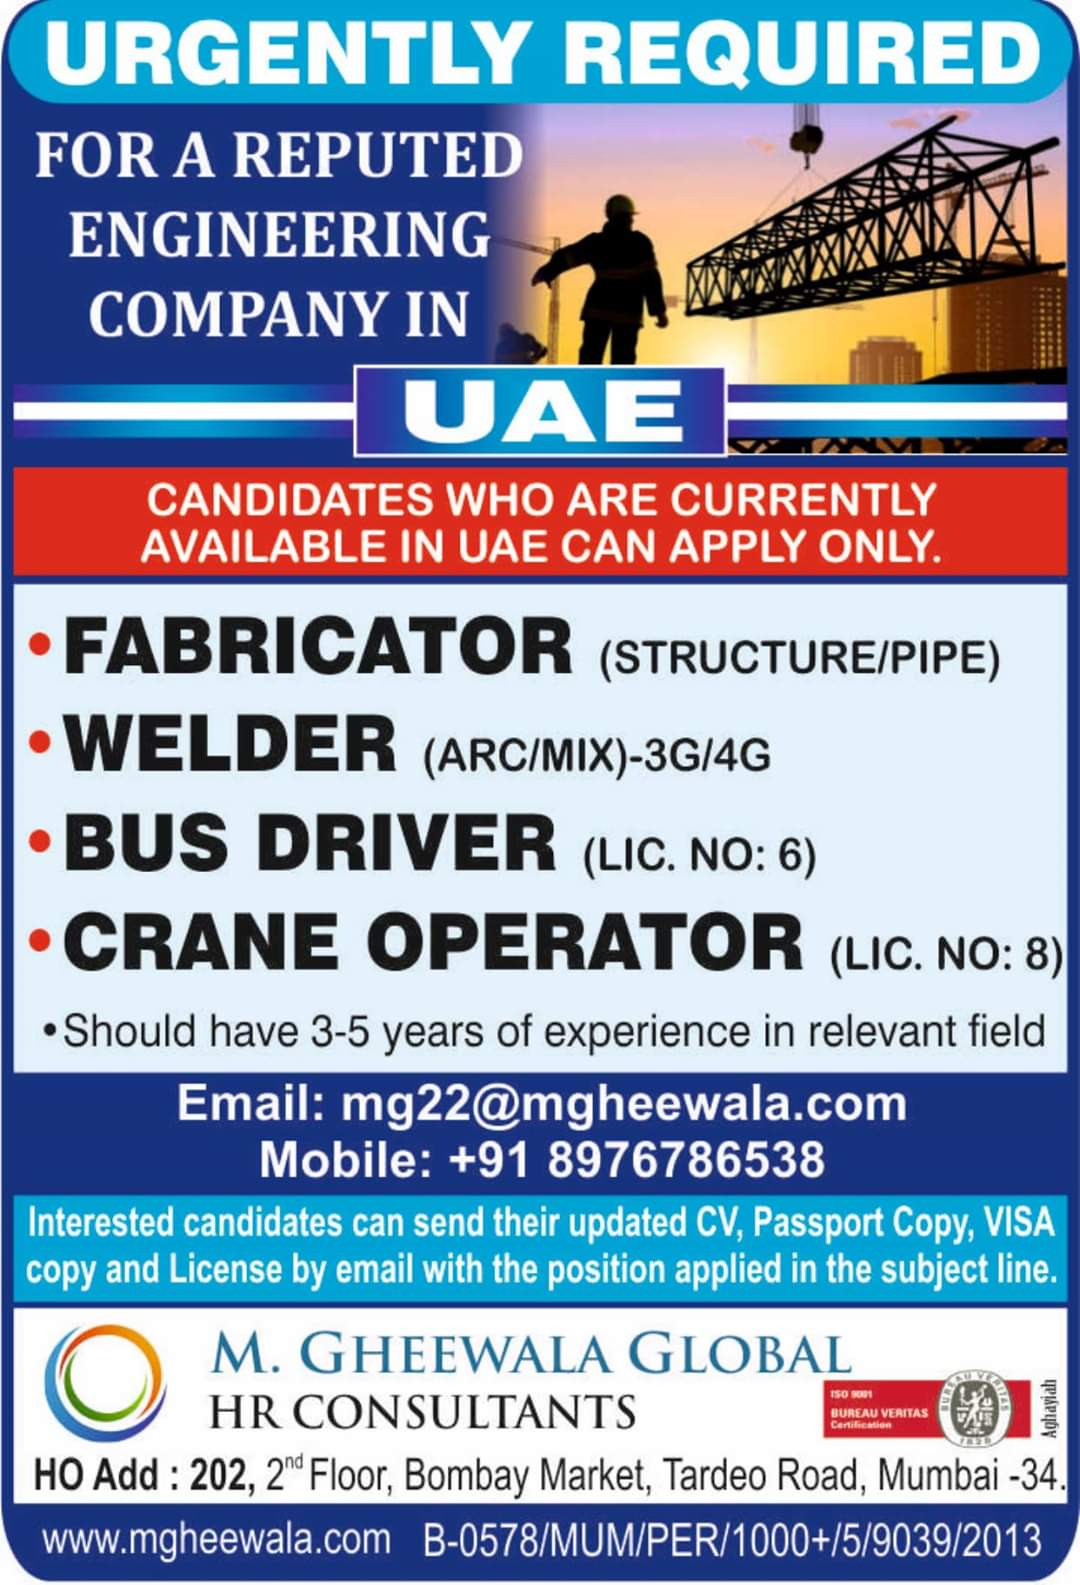 URGENT REQUIREMENT FOR REPUTED ENGINEERING COMPANY